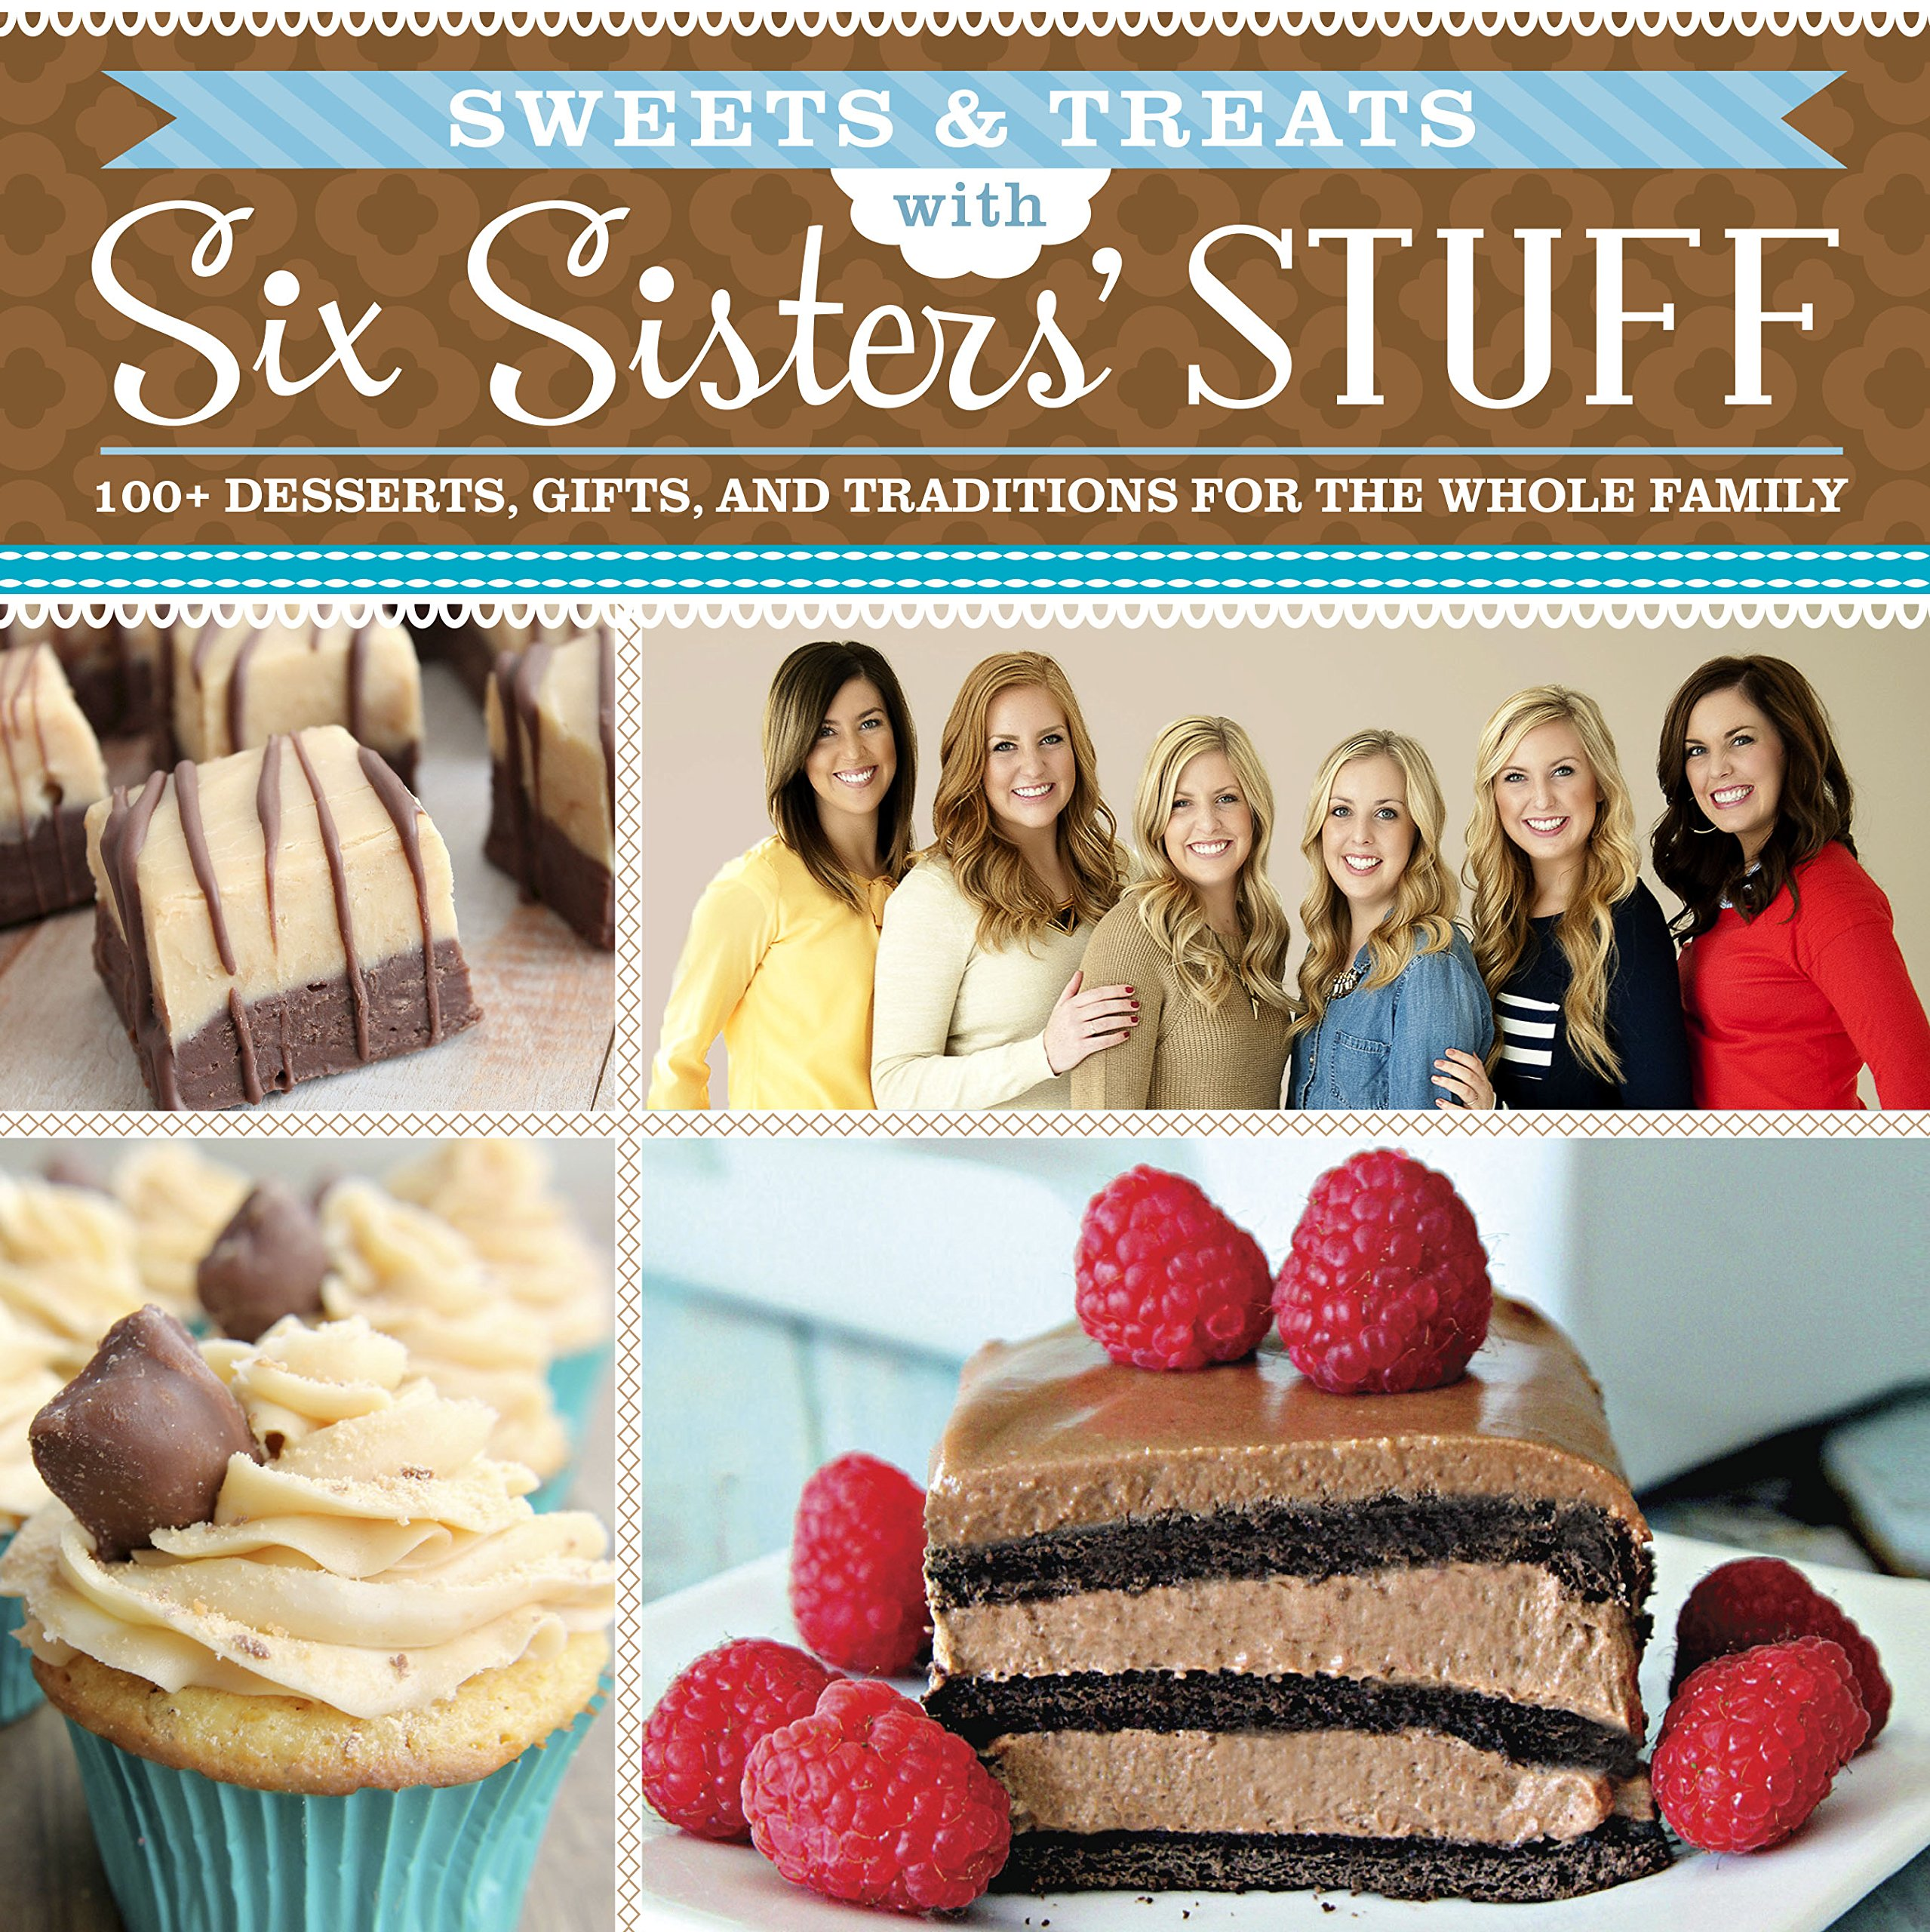 Six Sisters Cookies Sweets Treats With Six Sisters Stuff 100 Desserts Gift Ideas